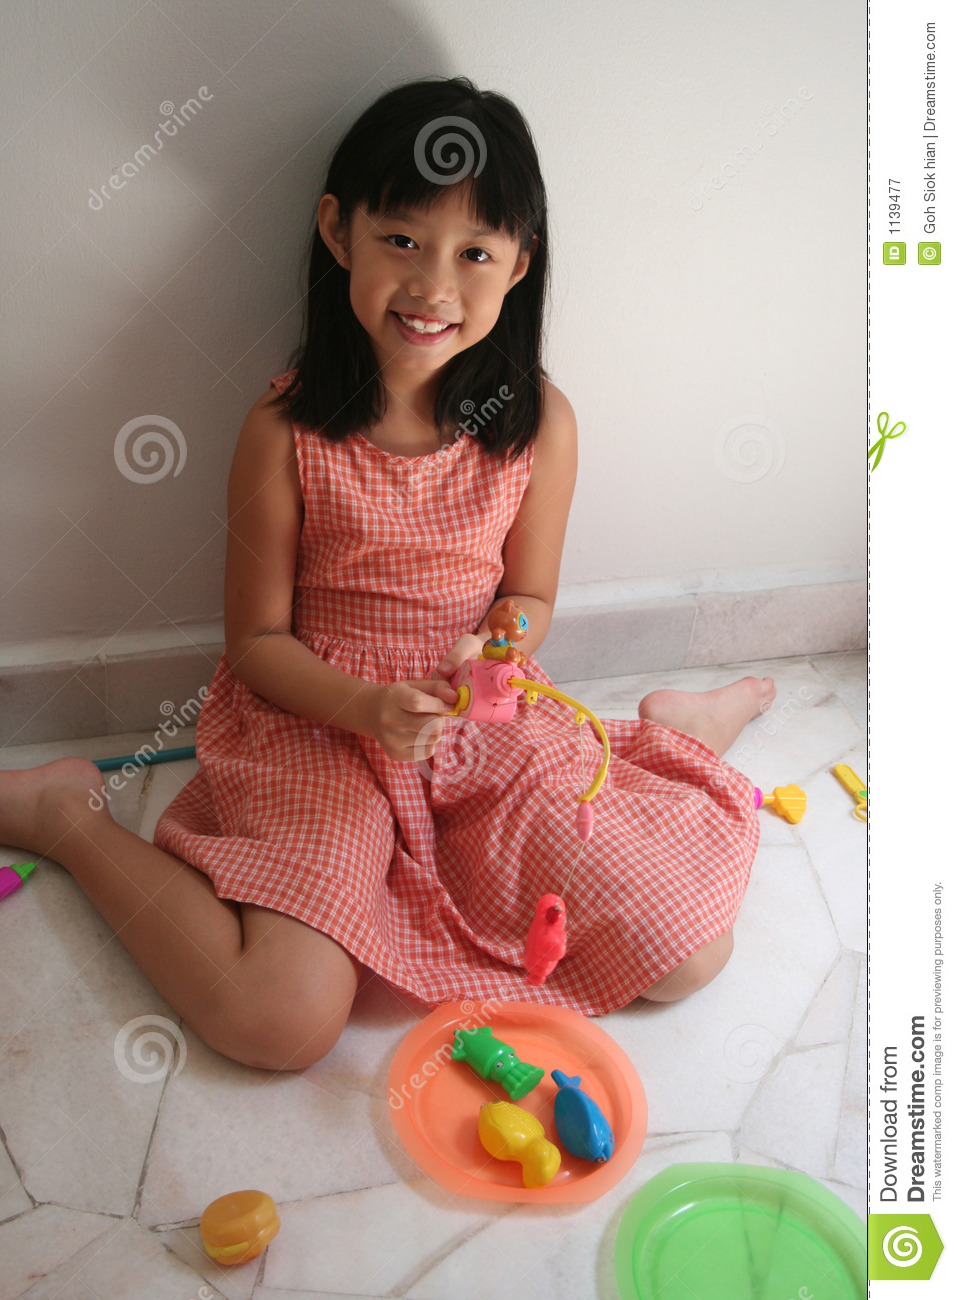 Girl with toy fishing rod